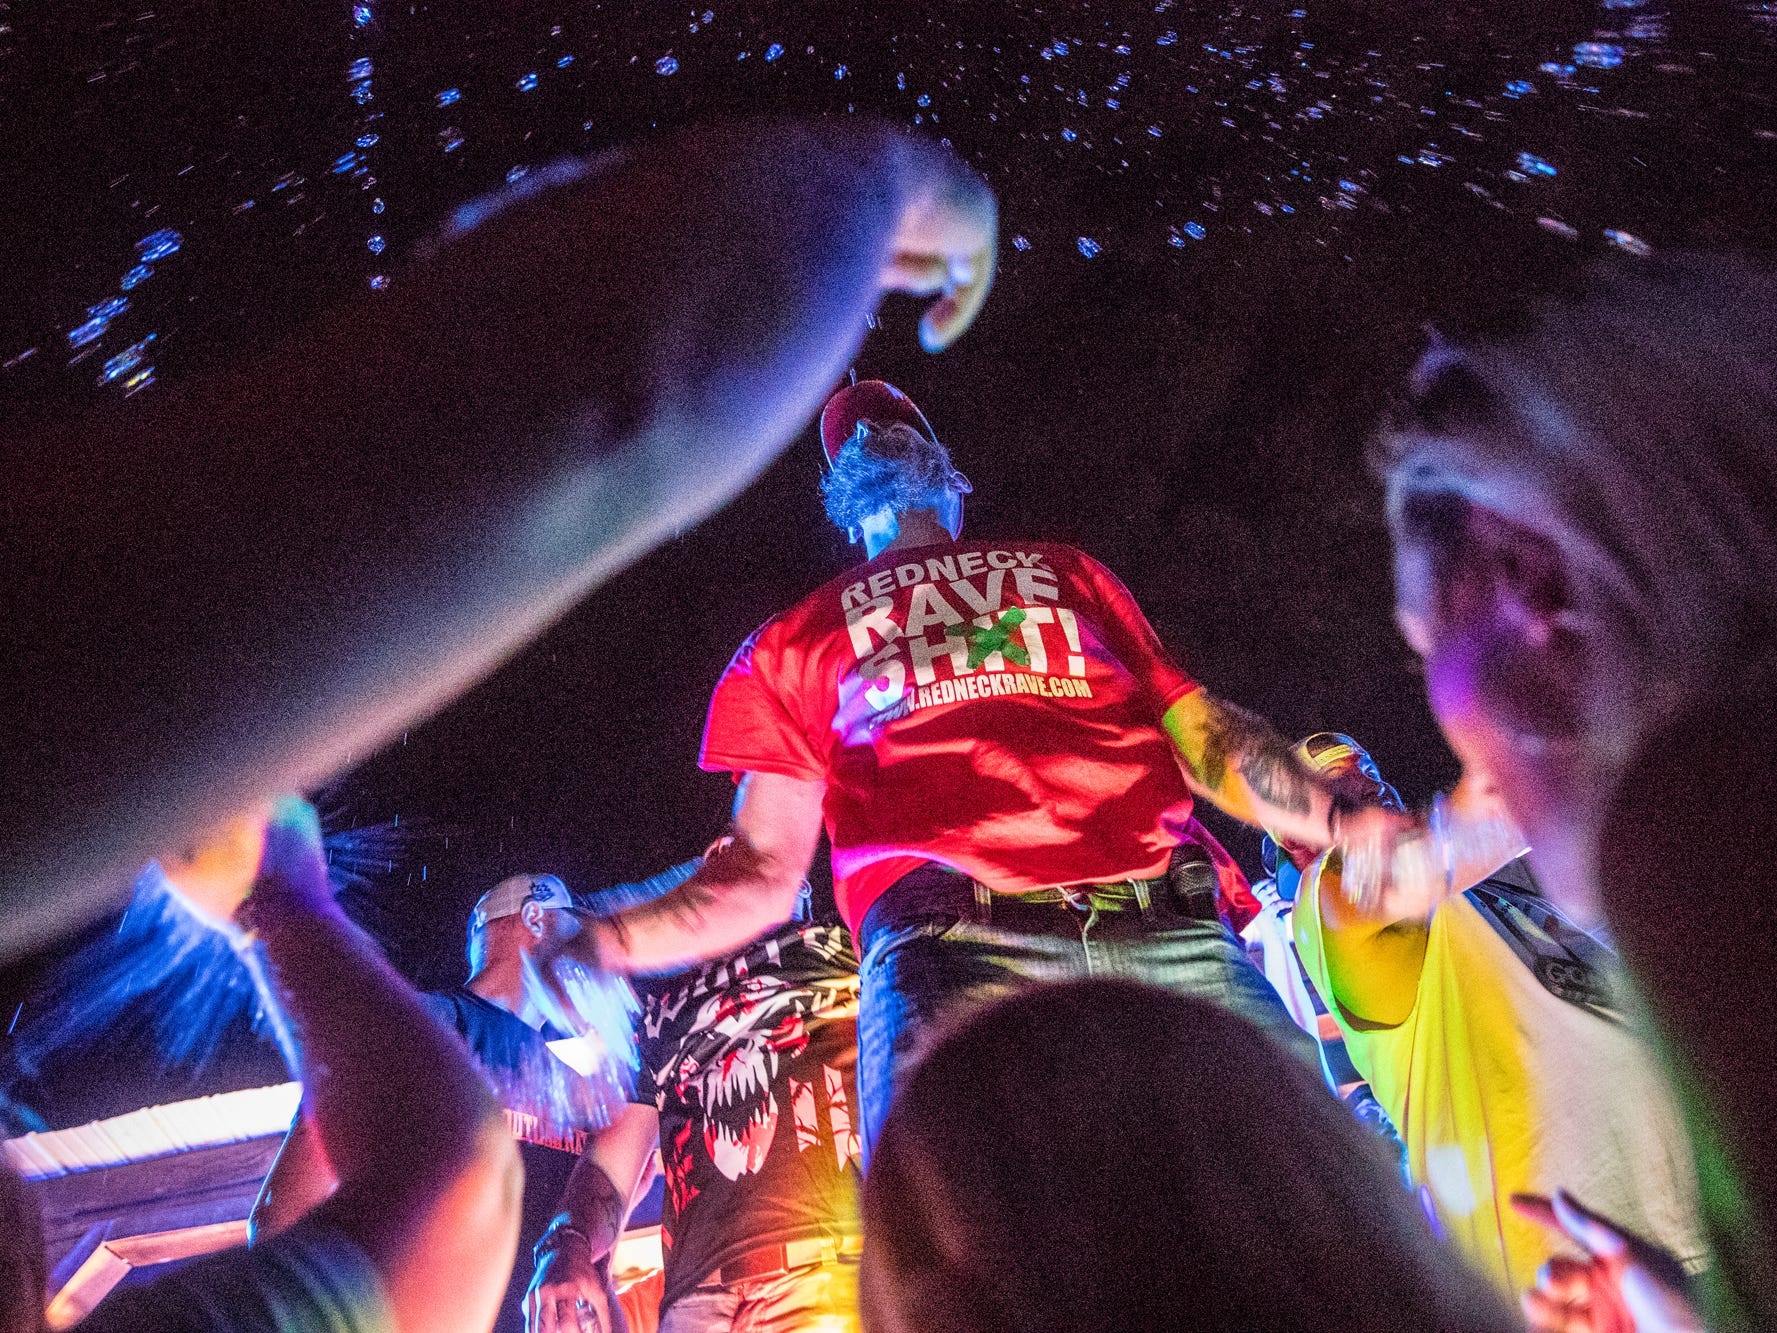 "Redneck Rave creator and music artist Justin Stowers performs with other country rap artists during the Redneck Rave at BlackSwan Mudpit in Medora, Ind., on Friday, July 20, 2018. Stowers, a self proclaimed city-boy from Fort Wayne, Ind., started the Redneck Rave in 2016. ""I was working at Arby's and cutting grass. Saved up some money so I could throw a little party,"" he said. ""A buddy came up to me and said 'man, you should throw a county party.' I was like alright, I'll try it.""  The most recent event marks the 19th Redneck Rave."